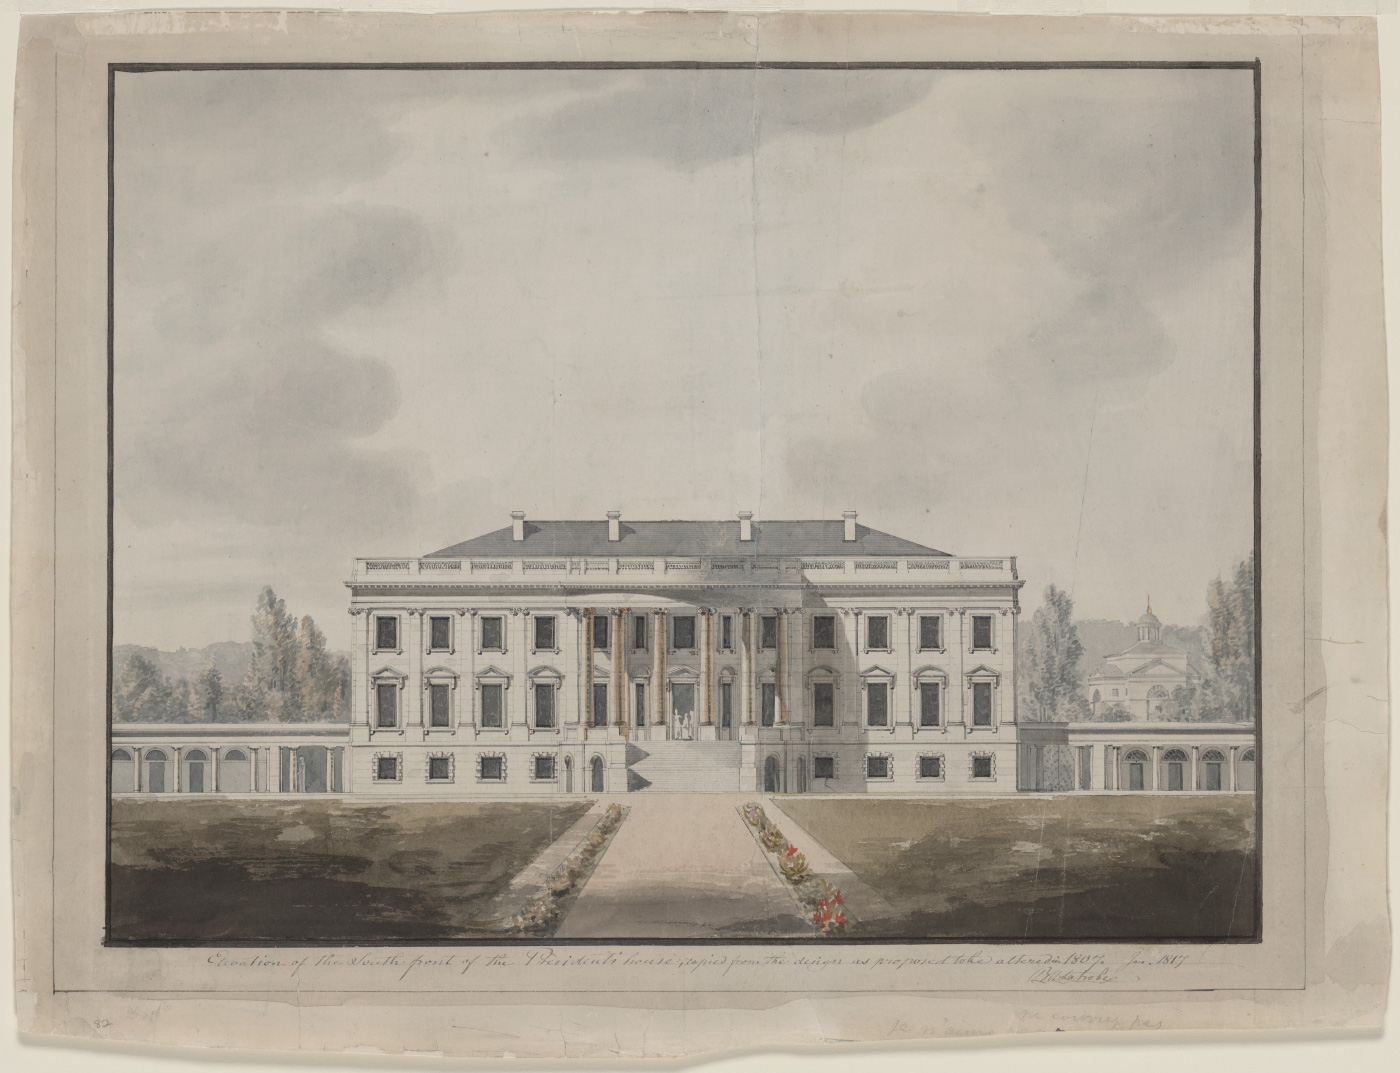 A plate engraving of the White House, realized in the neoclassical style